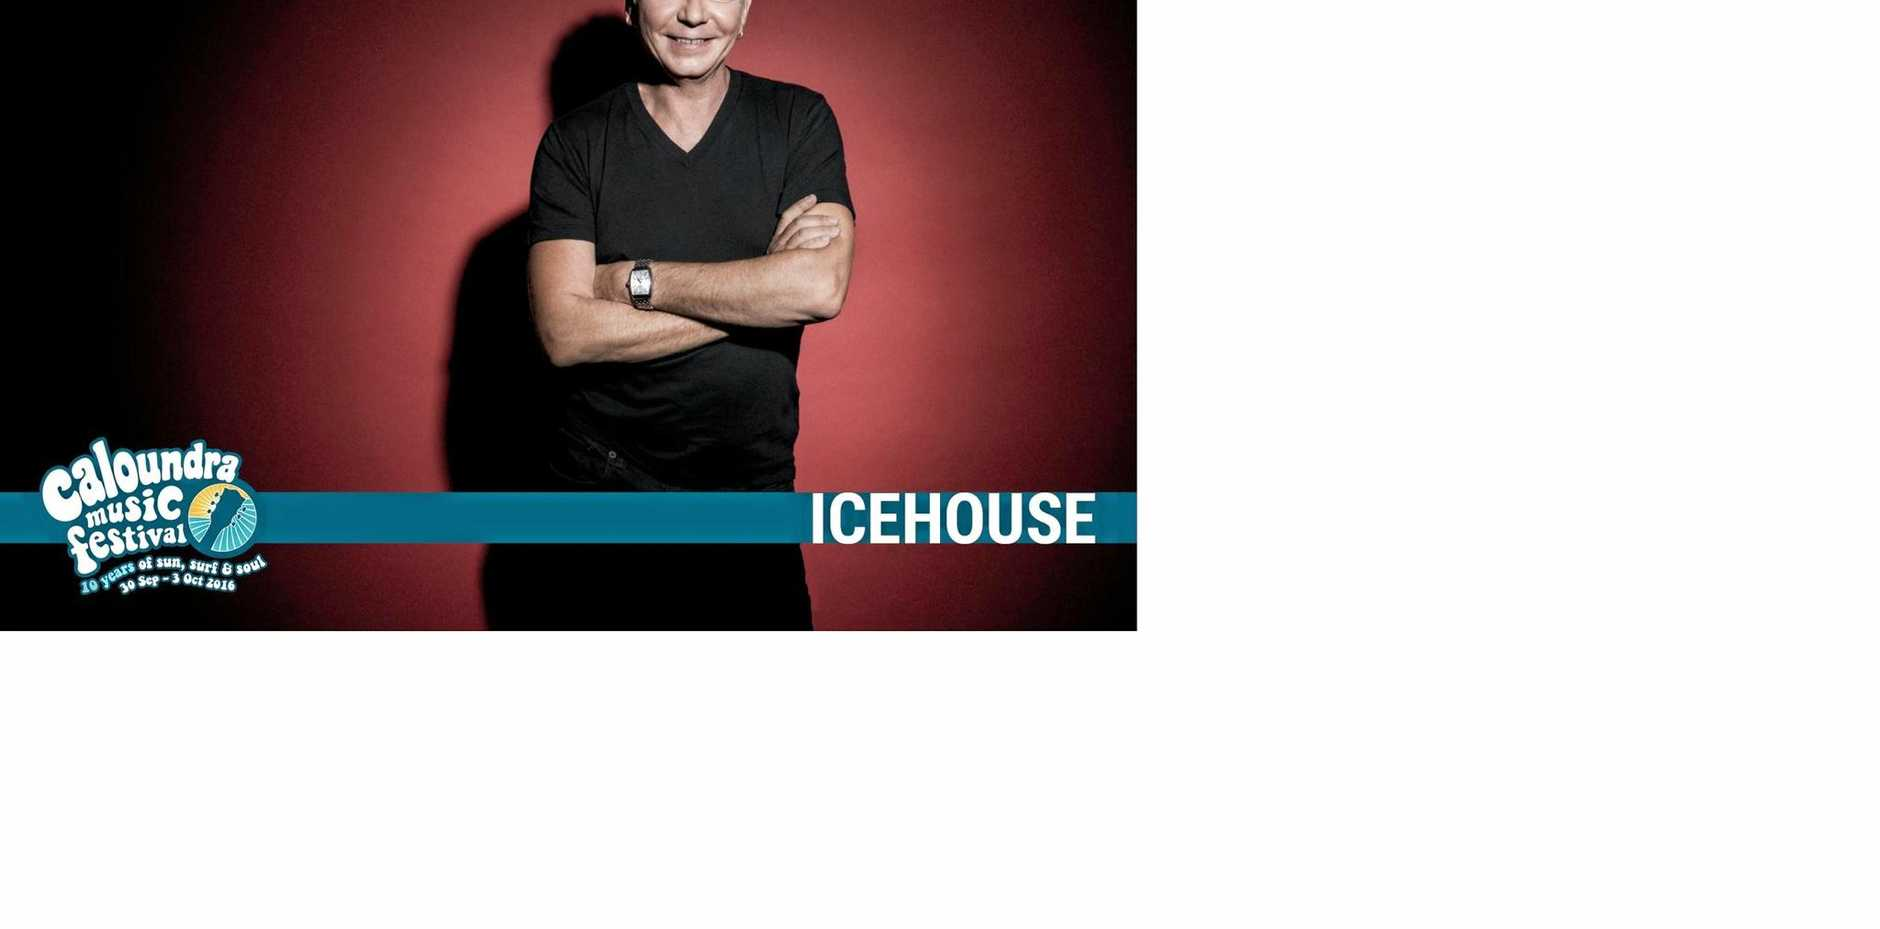 LEGEND: Iva Davies from Icehouse is at the Caloundra Music Festival.